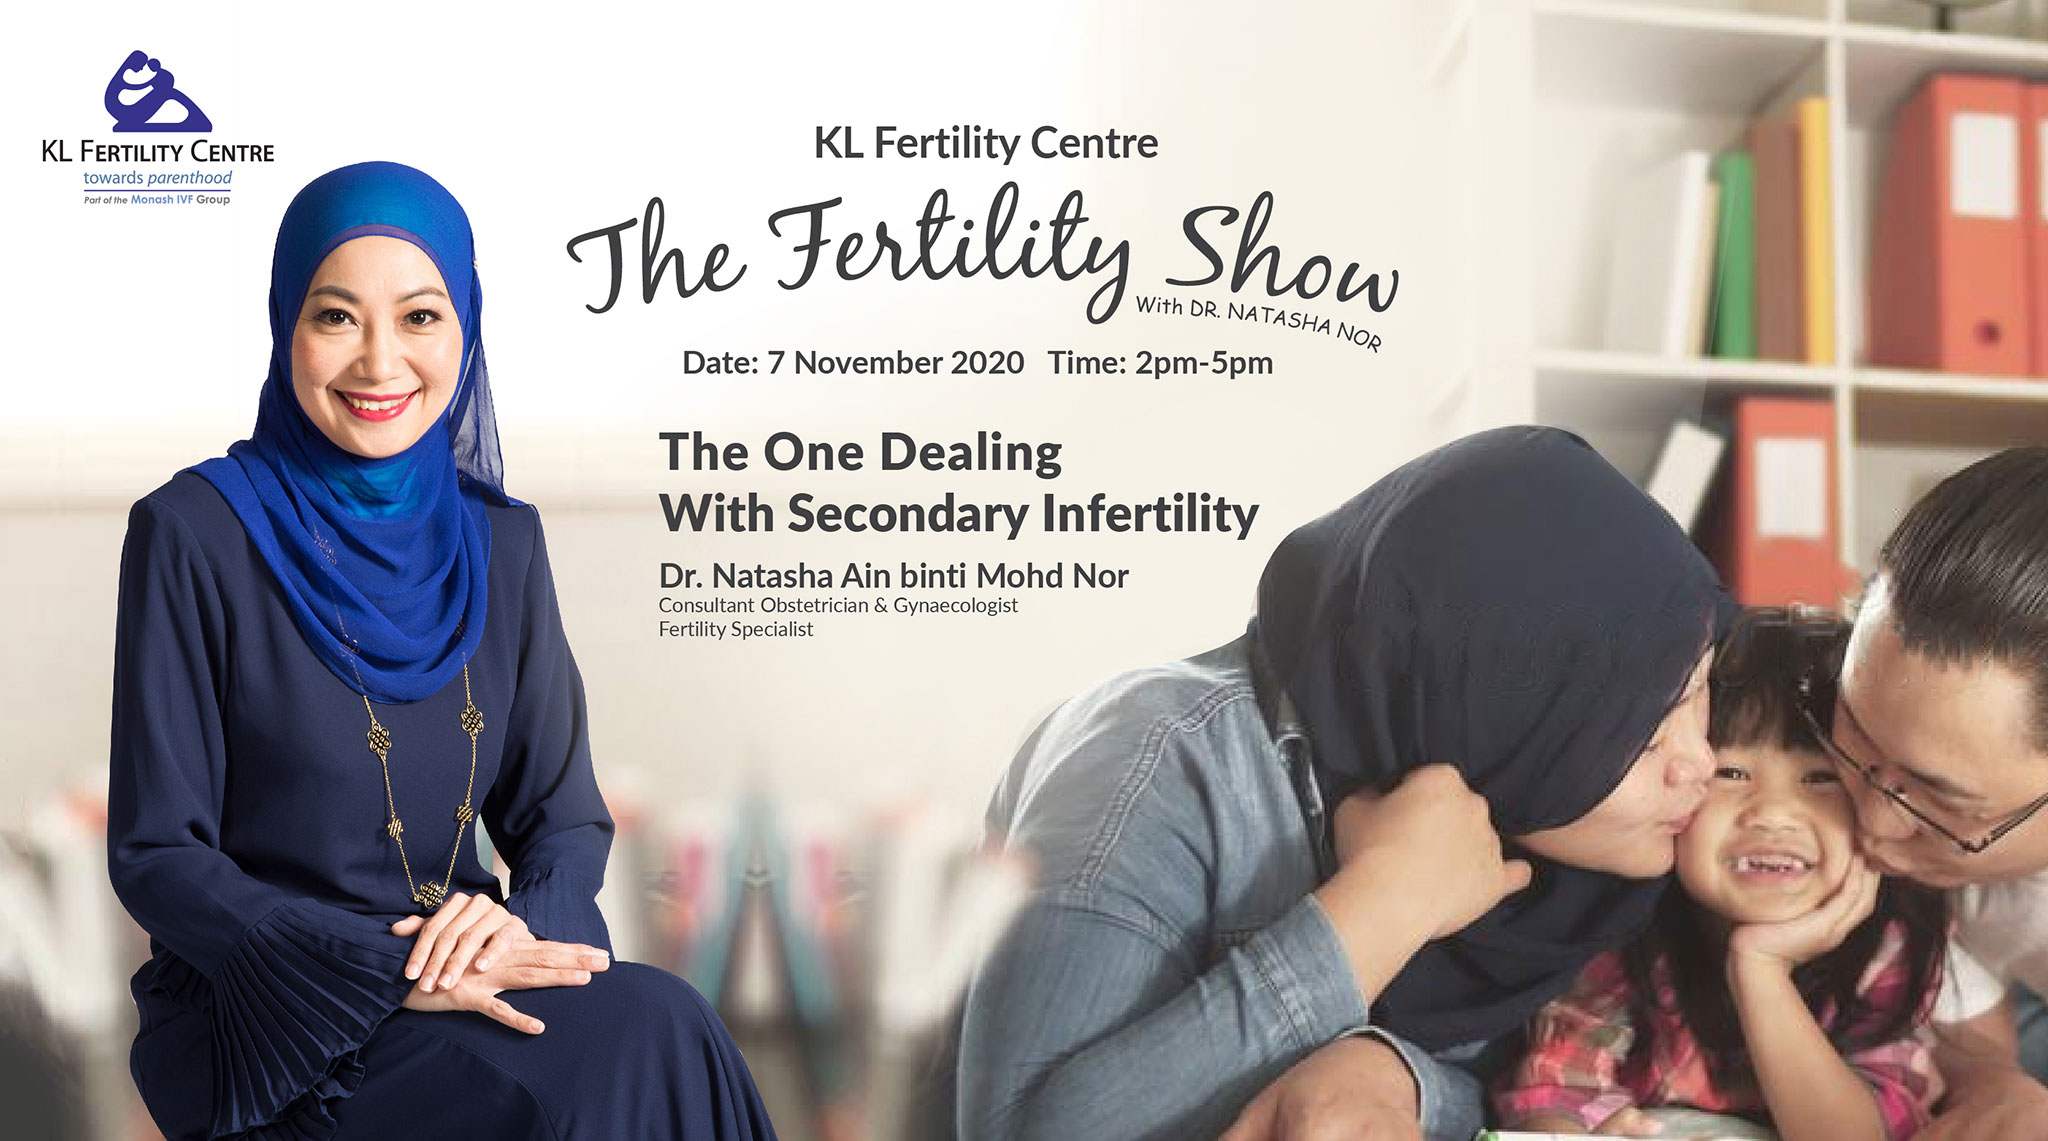 The Fertility Show : The One Dealing With Secondary Infertility, 07 November 2020 - Dr. Natasha Ain binti Mohd Nor